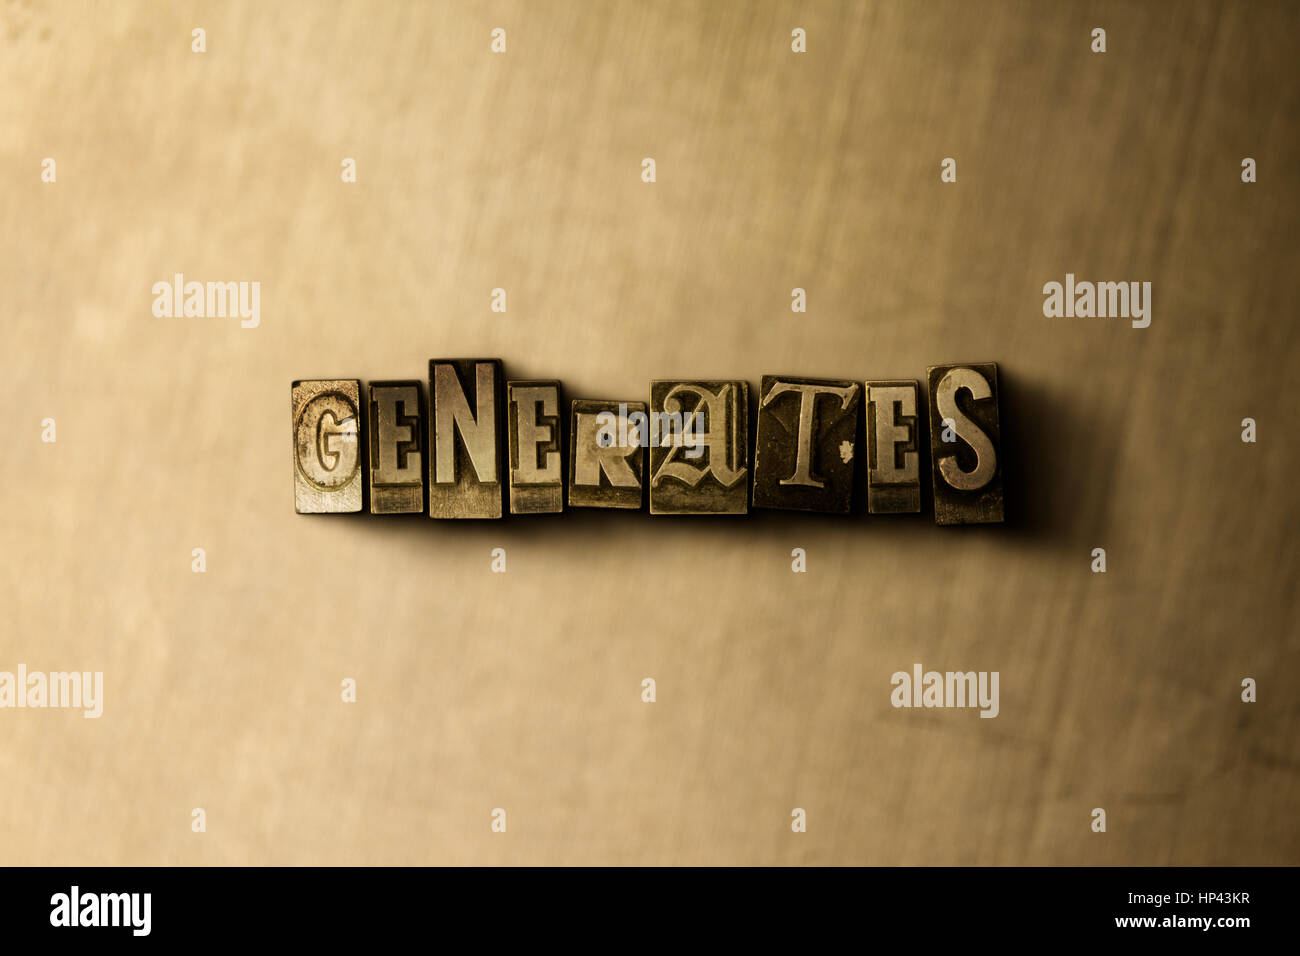 GENERATES - close-up of grungy vintage typeset word on metal backdrop. Royalty free stock illustration.  Can be - Stock Image